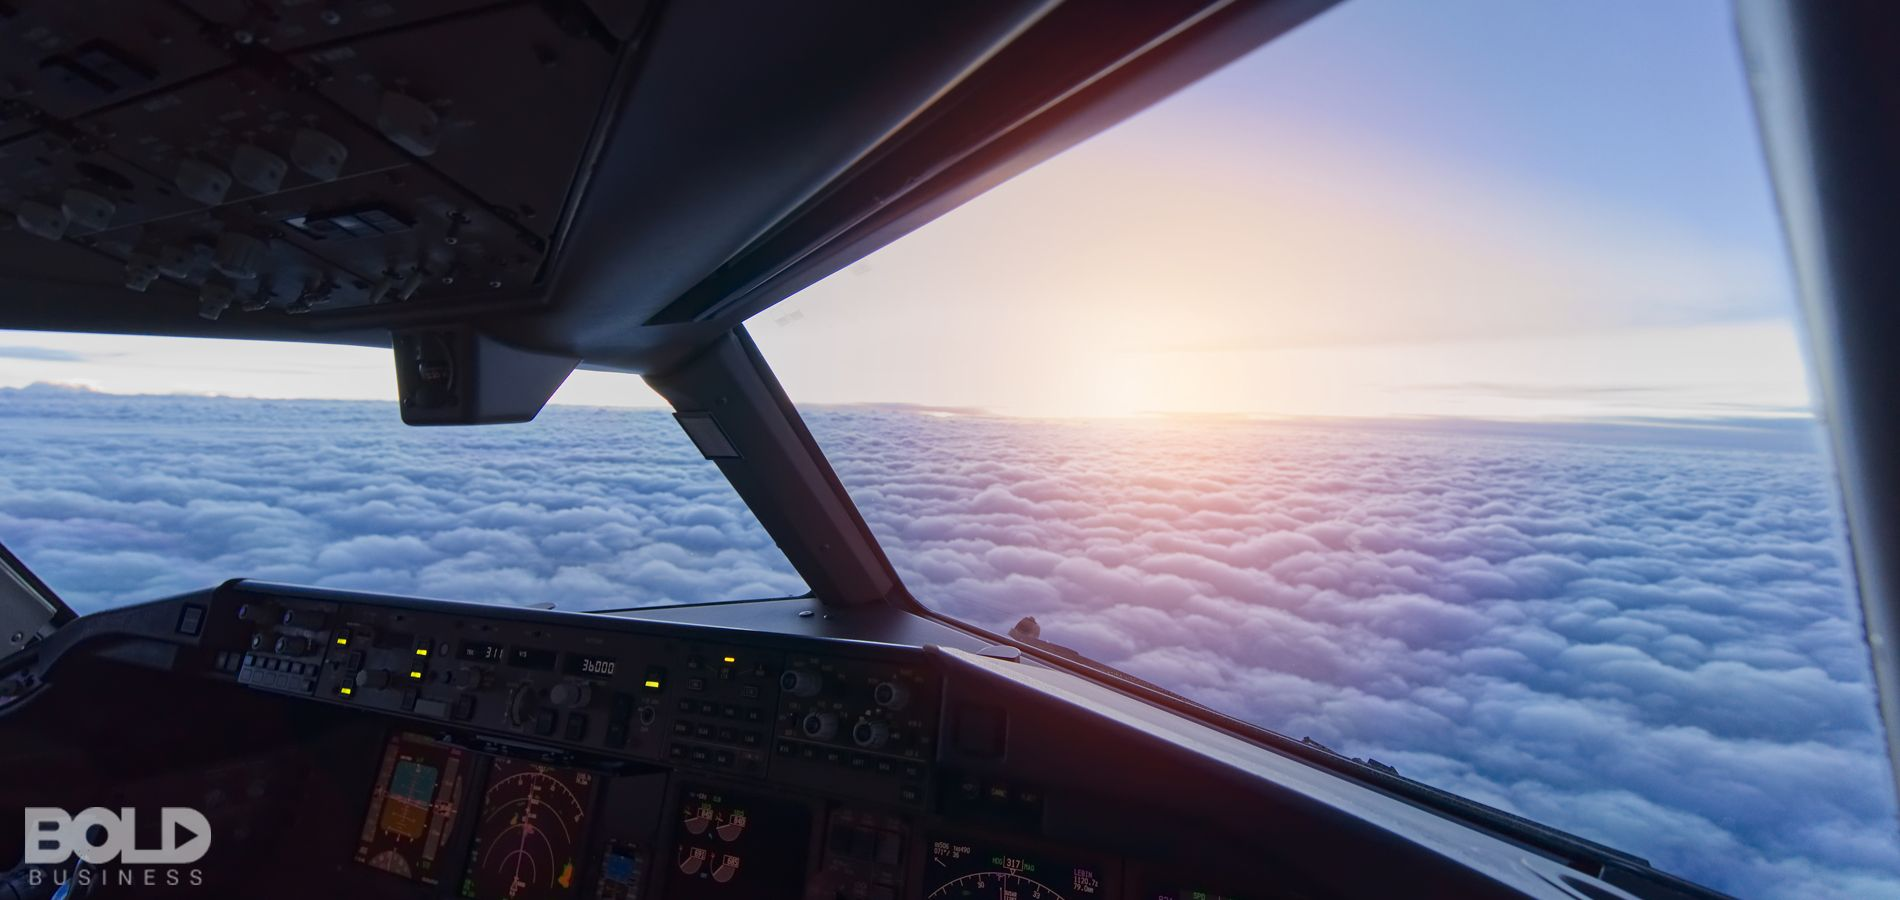 The view outside of the cockpit of a plane